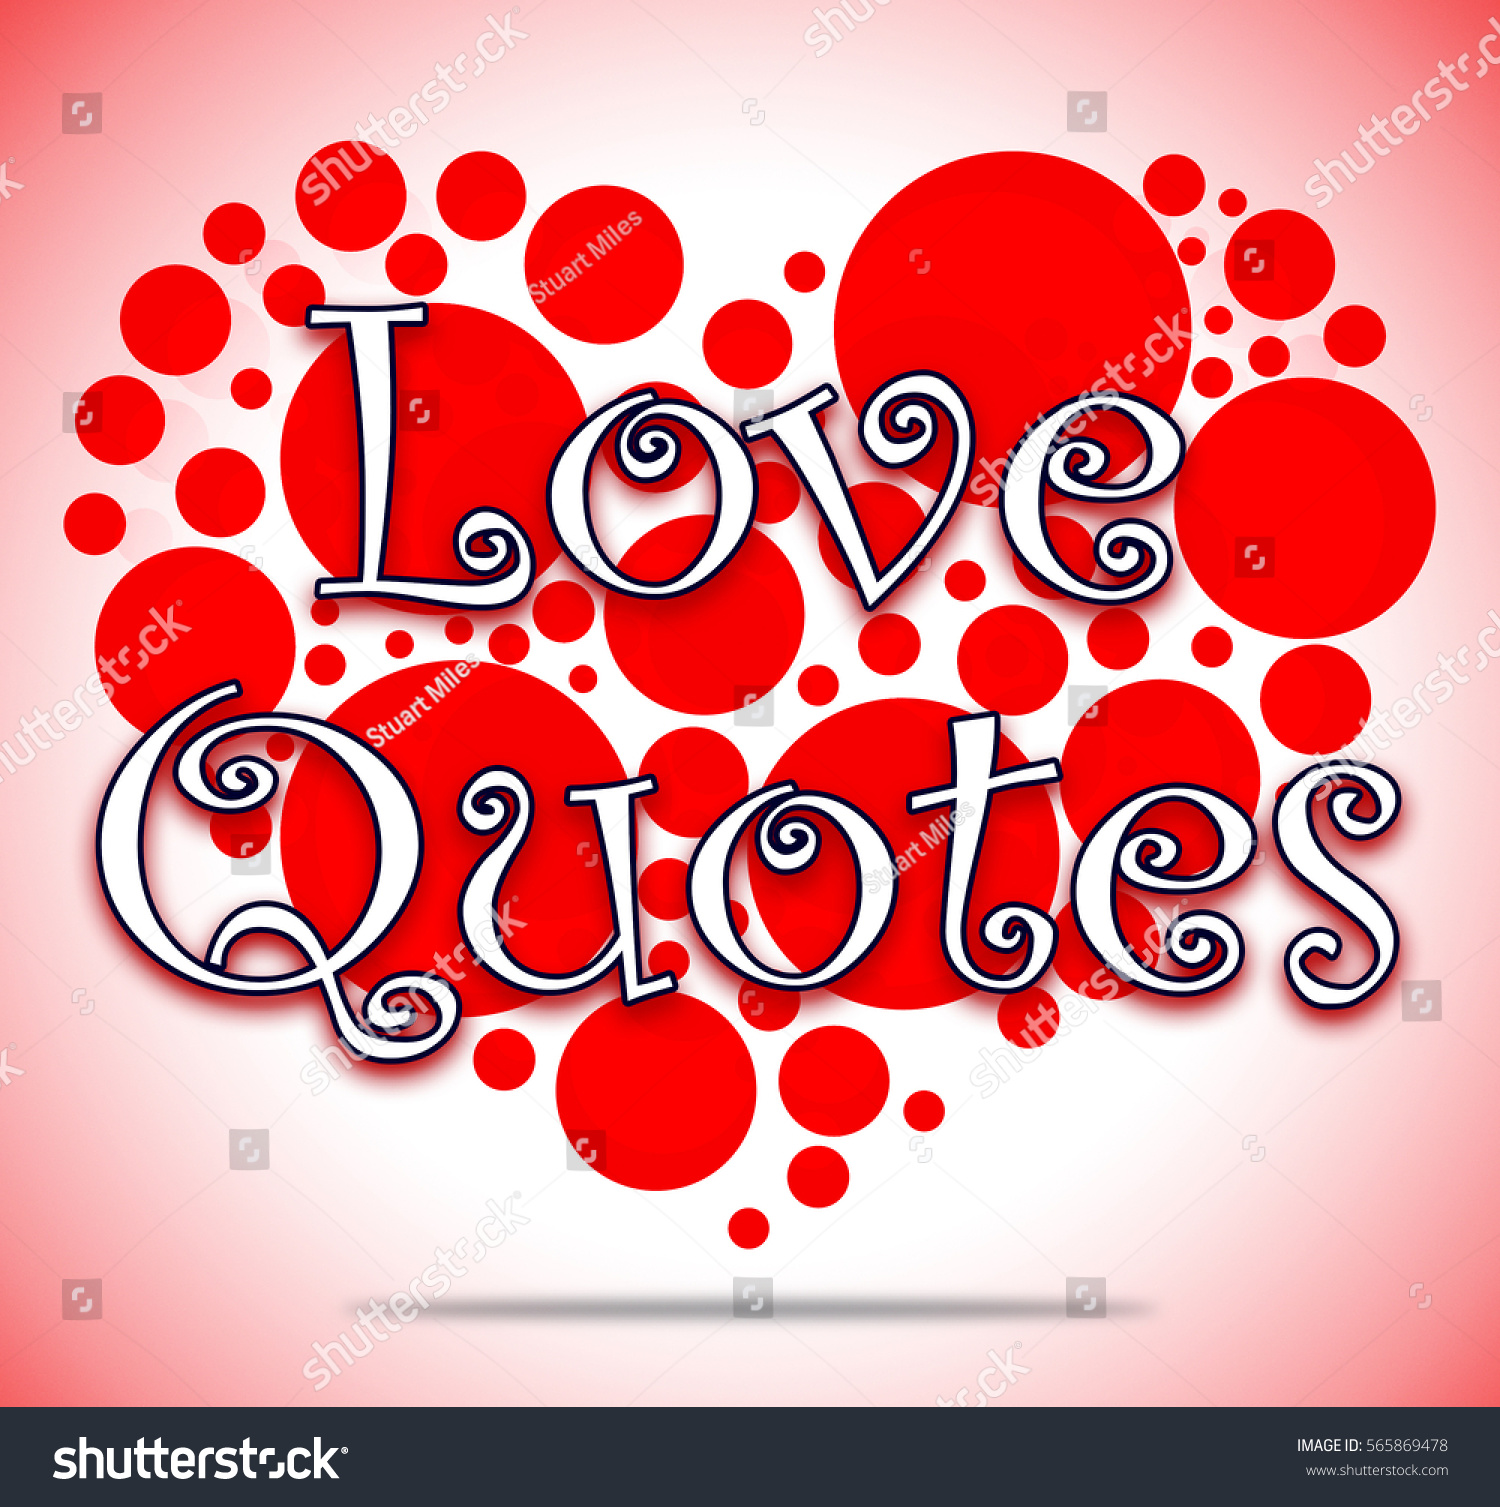 Inspiration Love Quotes Love Quotes Heart Circles Shows Loving Stock Illustration